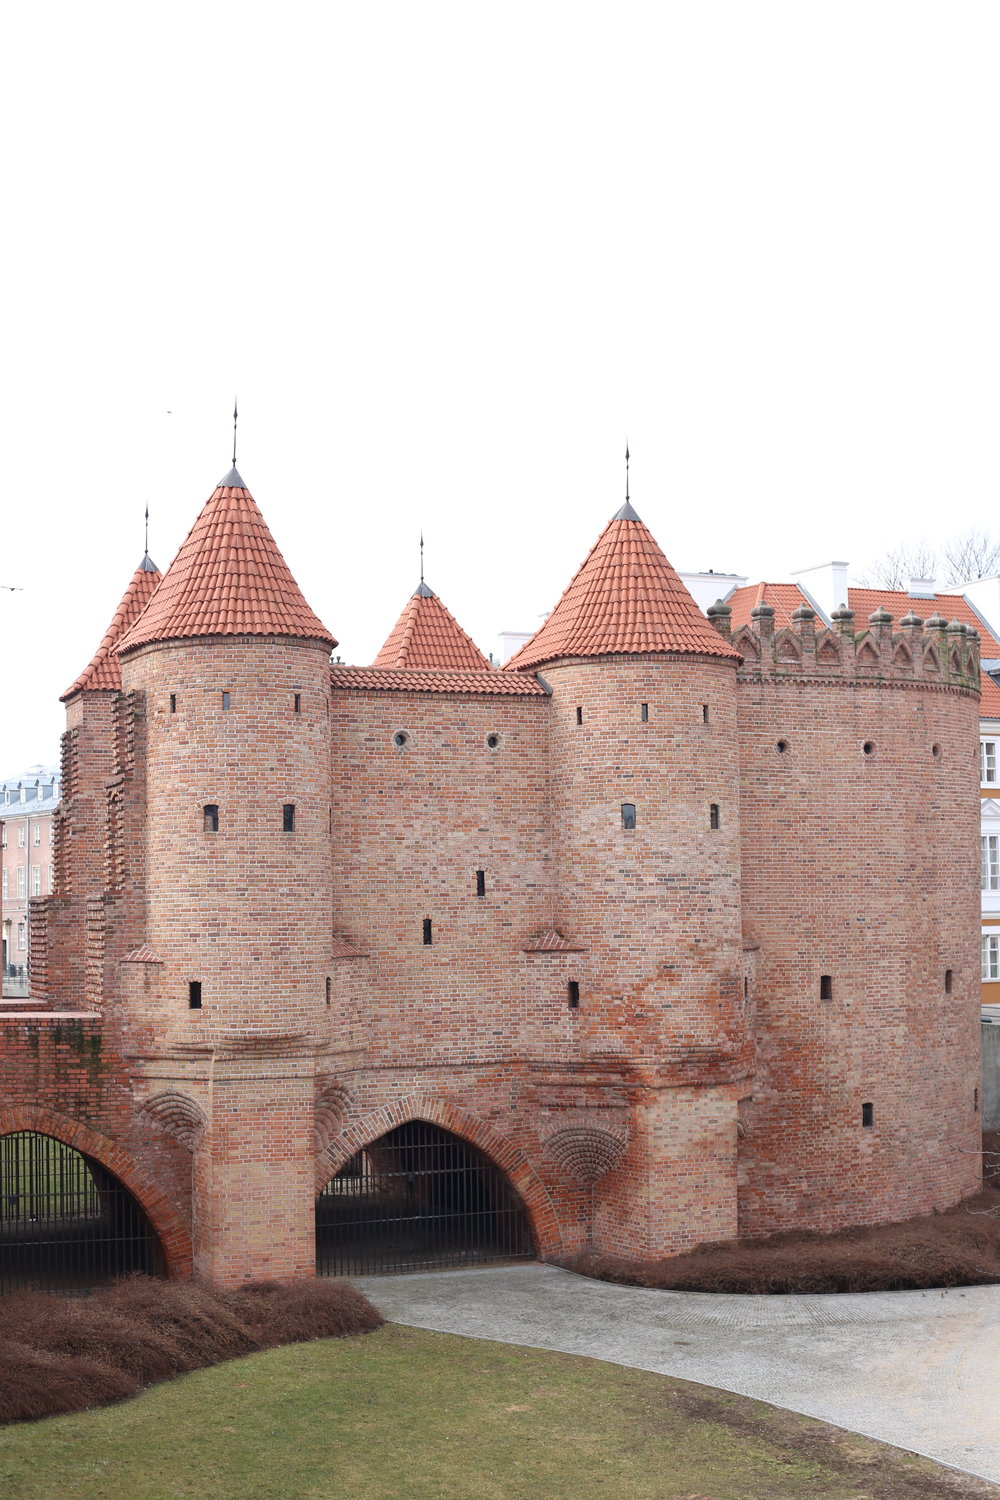 A small turreted castle-like town gate made of red brick, on the edges of Warsaw old town.